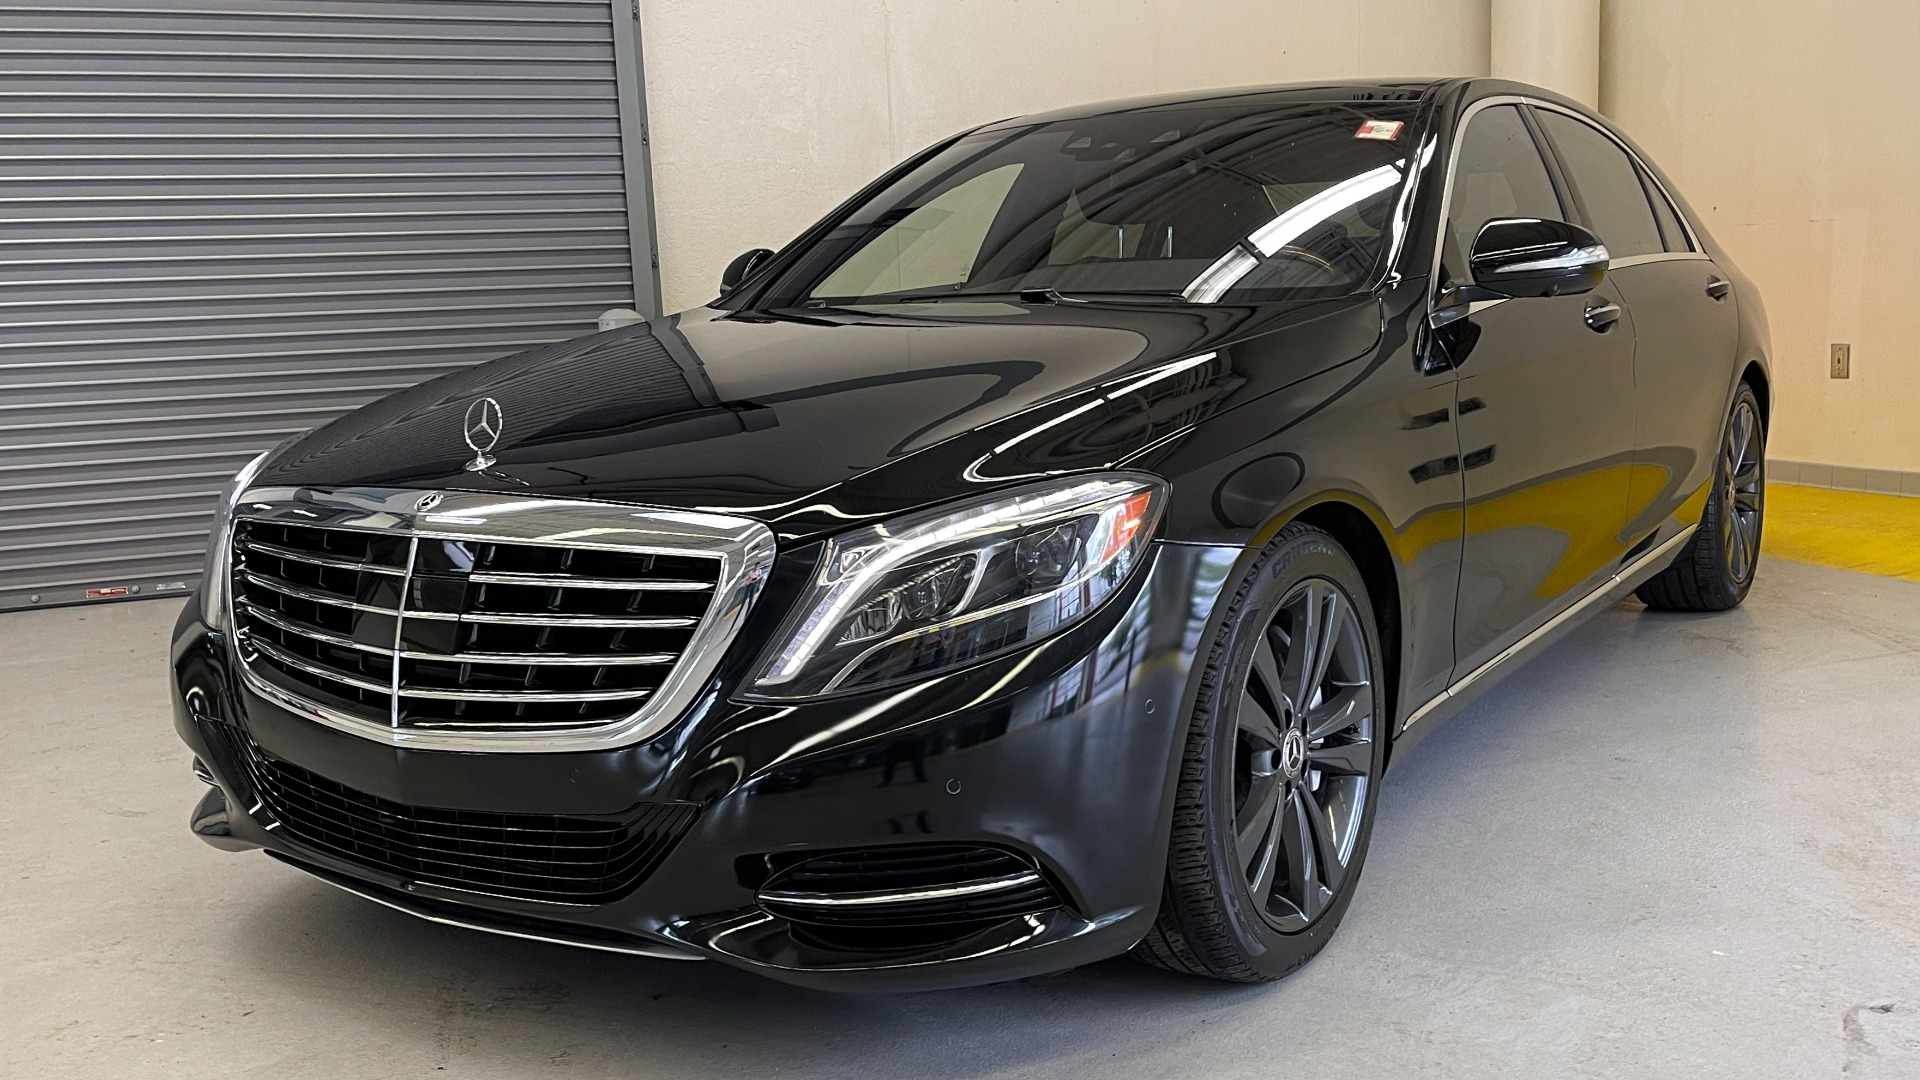 Used 2017 Mercedes-Benz S-CLASS S 550 4MATIC PREMIUM / NAV / BURMESTER / SUNROOF / REARVIEW for sale $58,995 at Formula Imports in Charlotte NC 28227 3